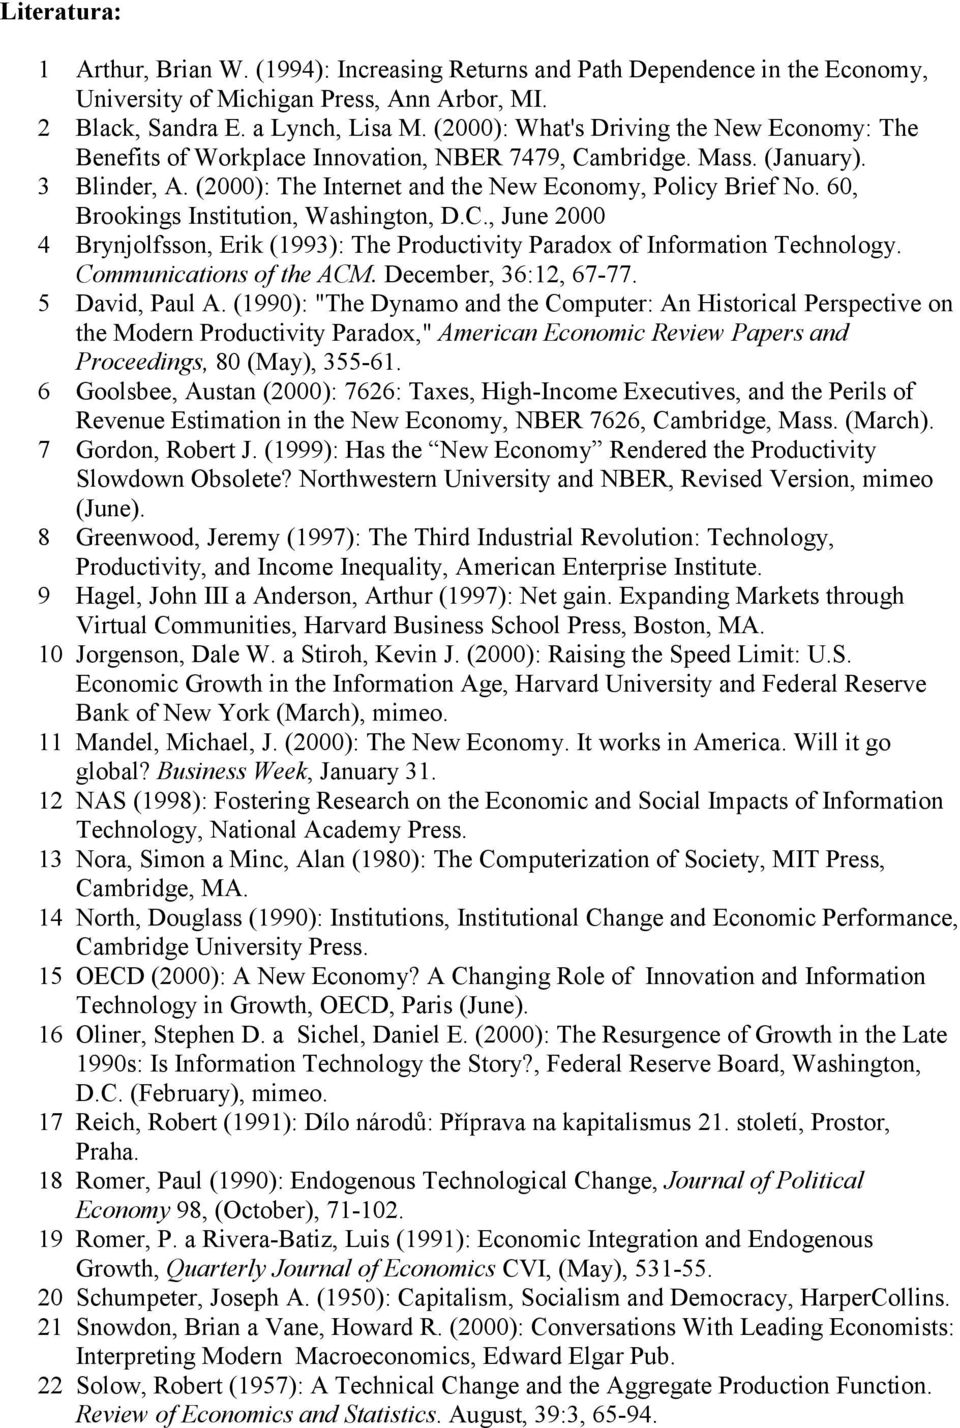 60, Brookings Institution, Washington, D.C., June 2000 4 Brynjolfsson, Erik (1993): The Productivity Paradox of Information Technology. Communications of the ACM. December, 36:12, 67-77.